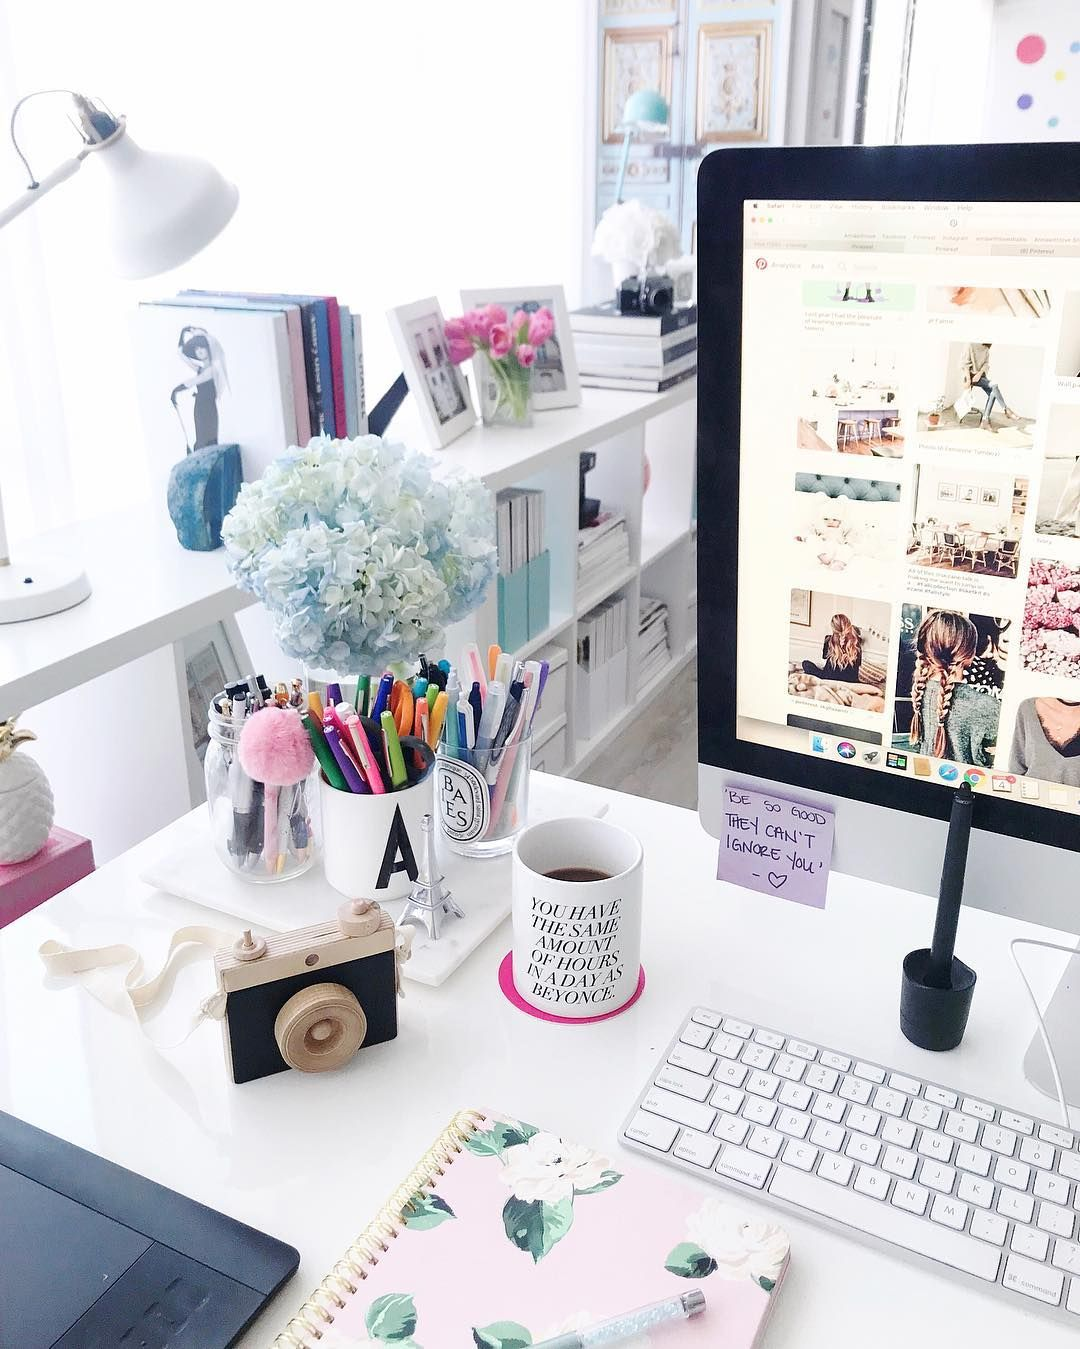 See More Via Instagram Annawithlove Home Office Office Goals Camera Blooms Photographer Life Desk Home Office Decor Office Desk Decor Work Space Decor